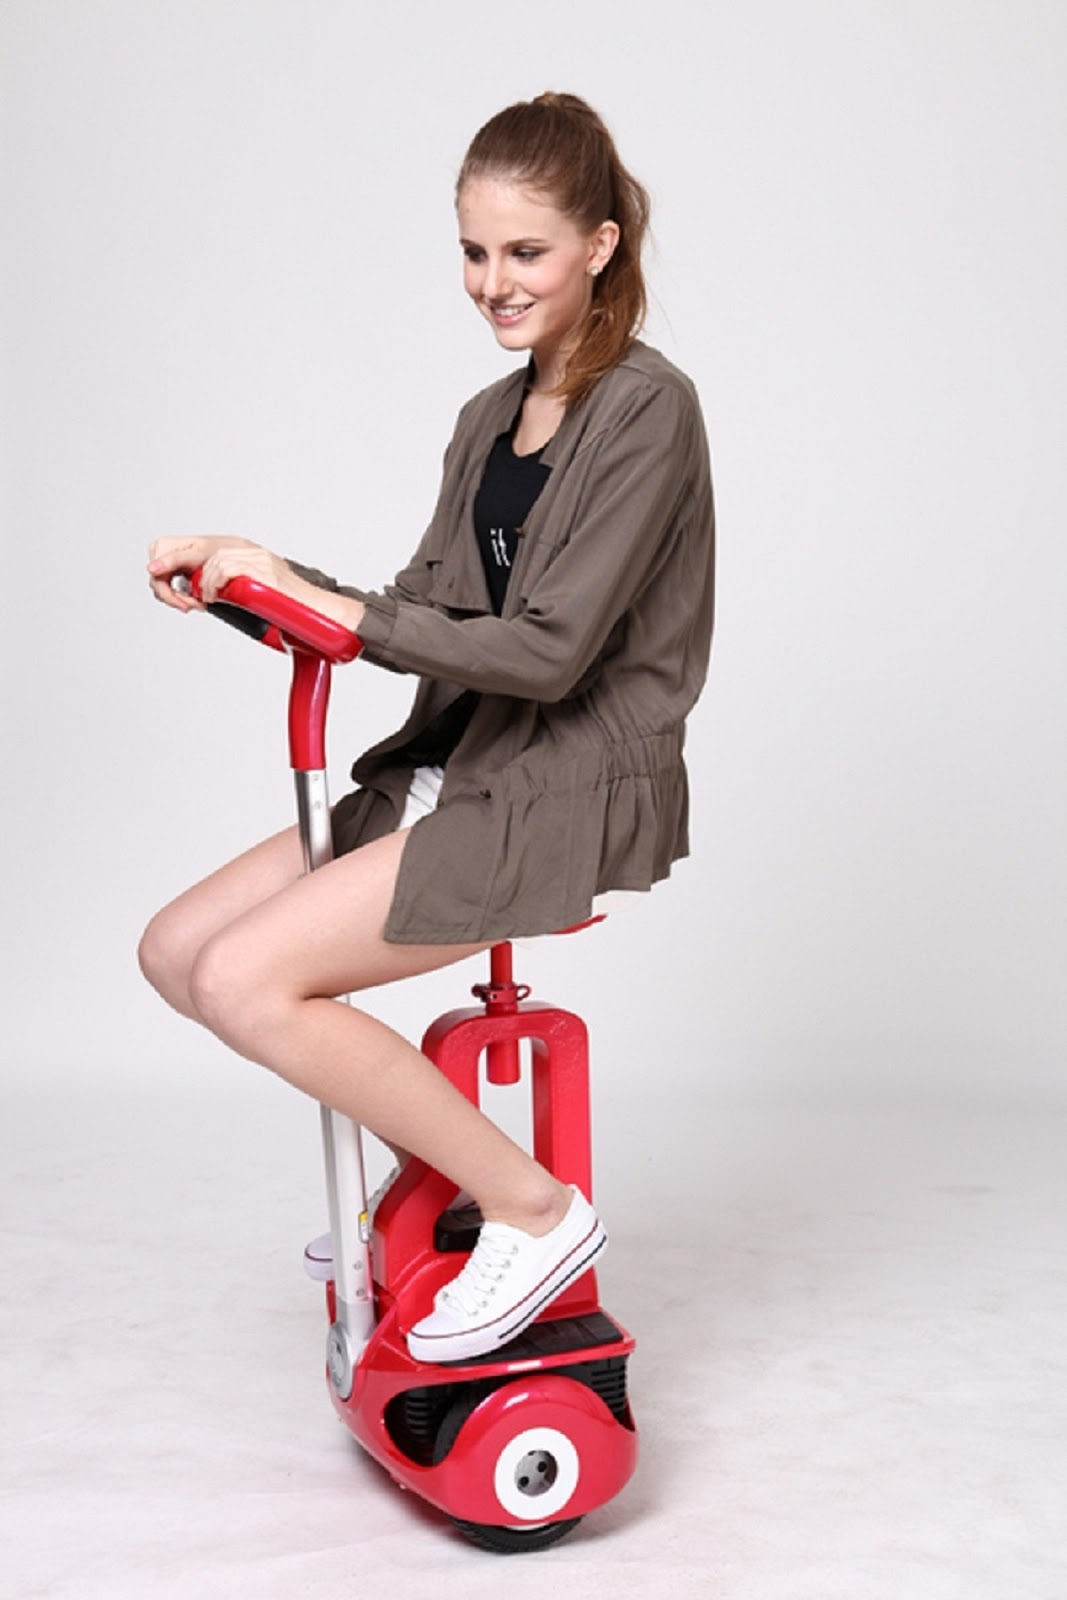 Segways for sale Is it a Segway Human Transporter